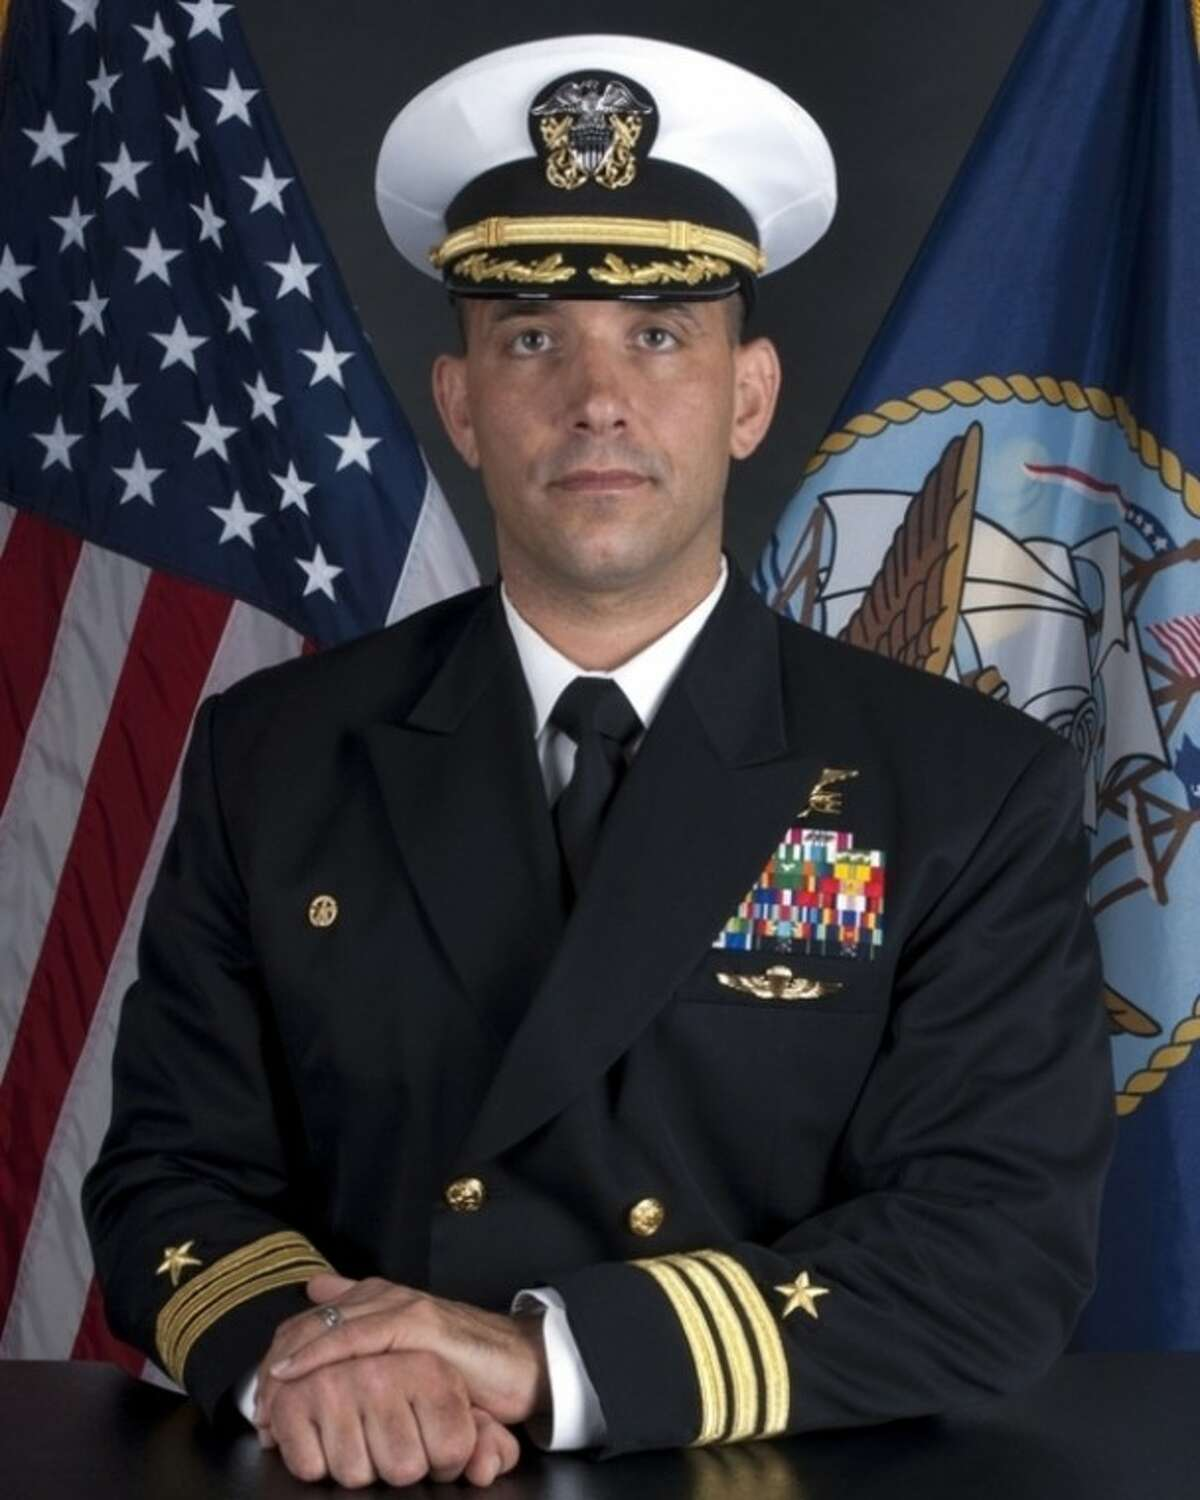 This undated photo provided by the U.S. Navy shows Navy SEAL Cdr. Job W. Price. U.S. military officials are investigating the apparent suicide of Price, 42, of Pottstown, Pa., who died Saturday of a non-combat-related injury while supporting stability operations in Uruzgan Province, Afghanistan. (AP Photo/U.S. Navy)